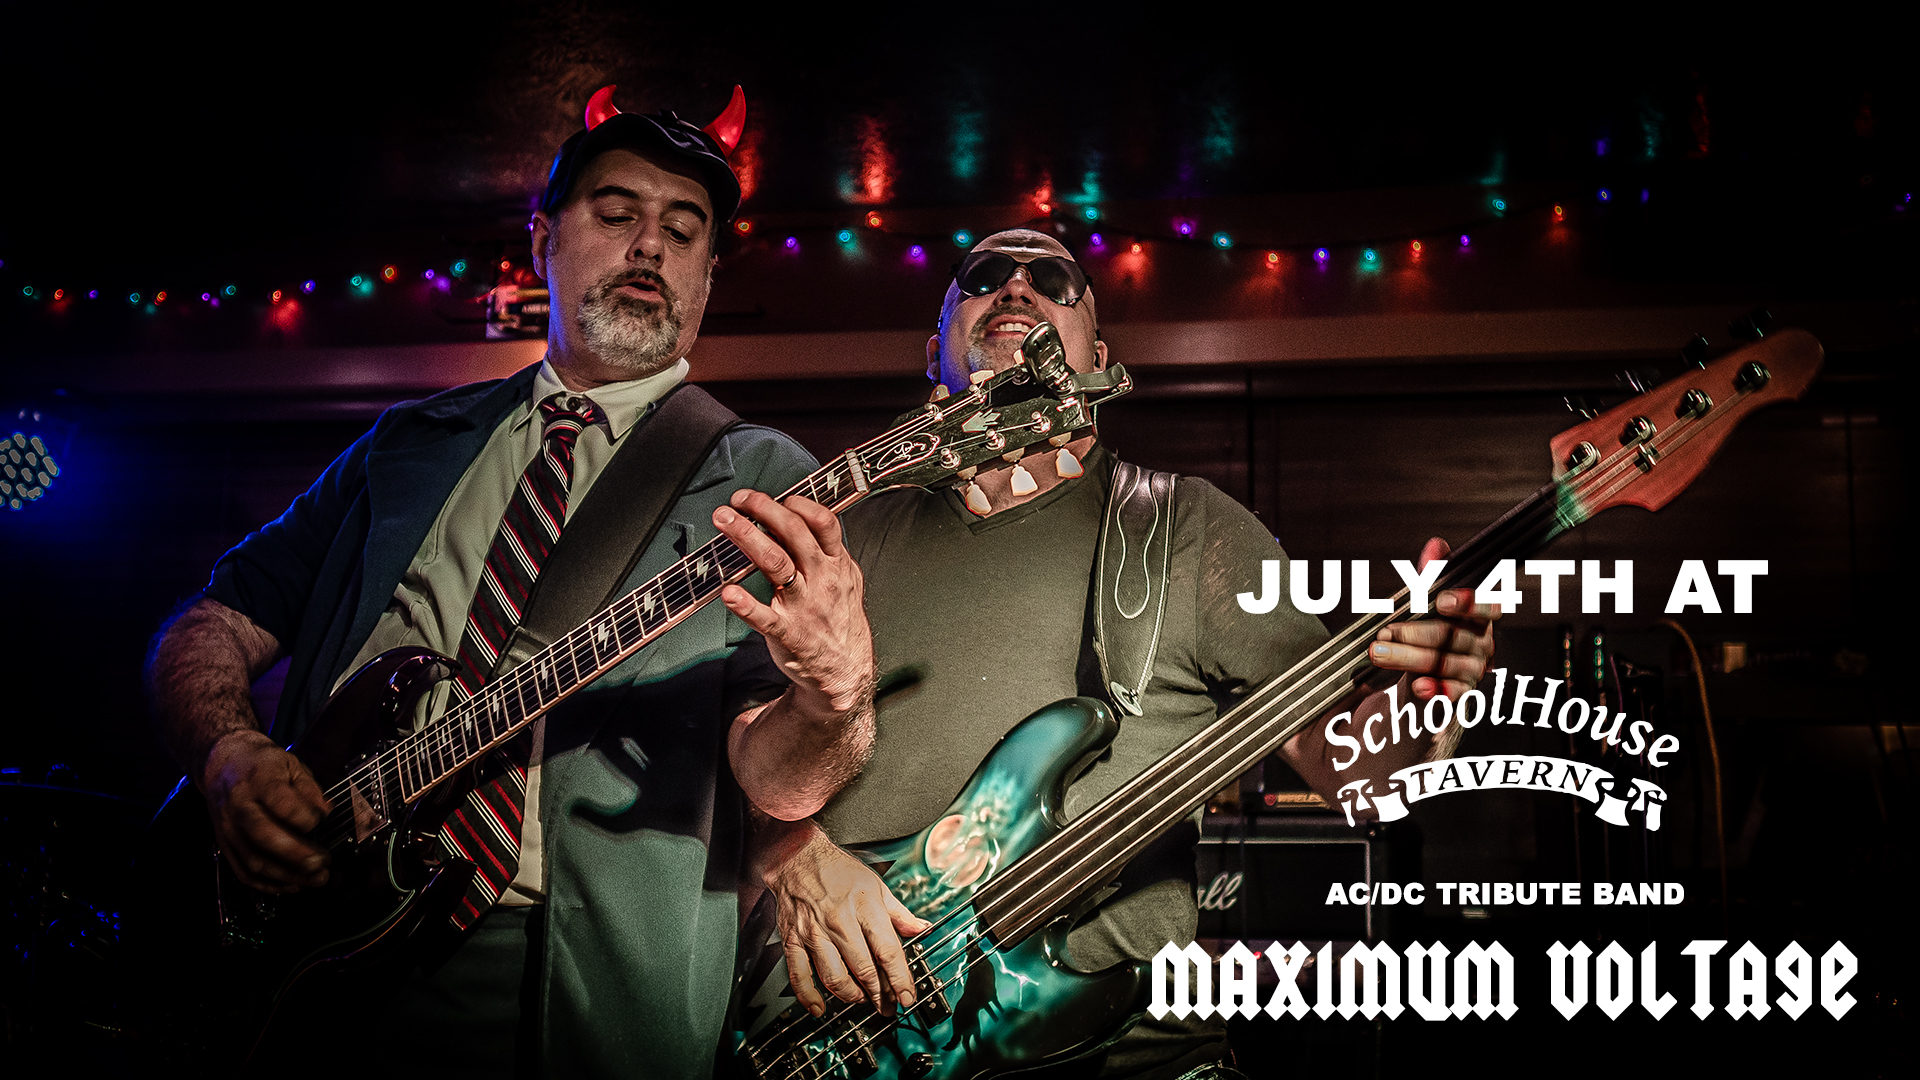 July 4th Party with Maximum Voltage